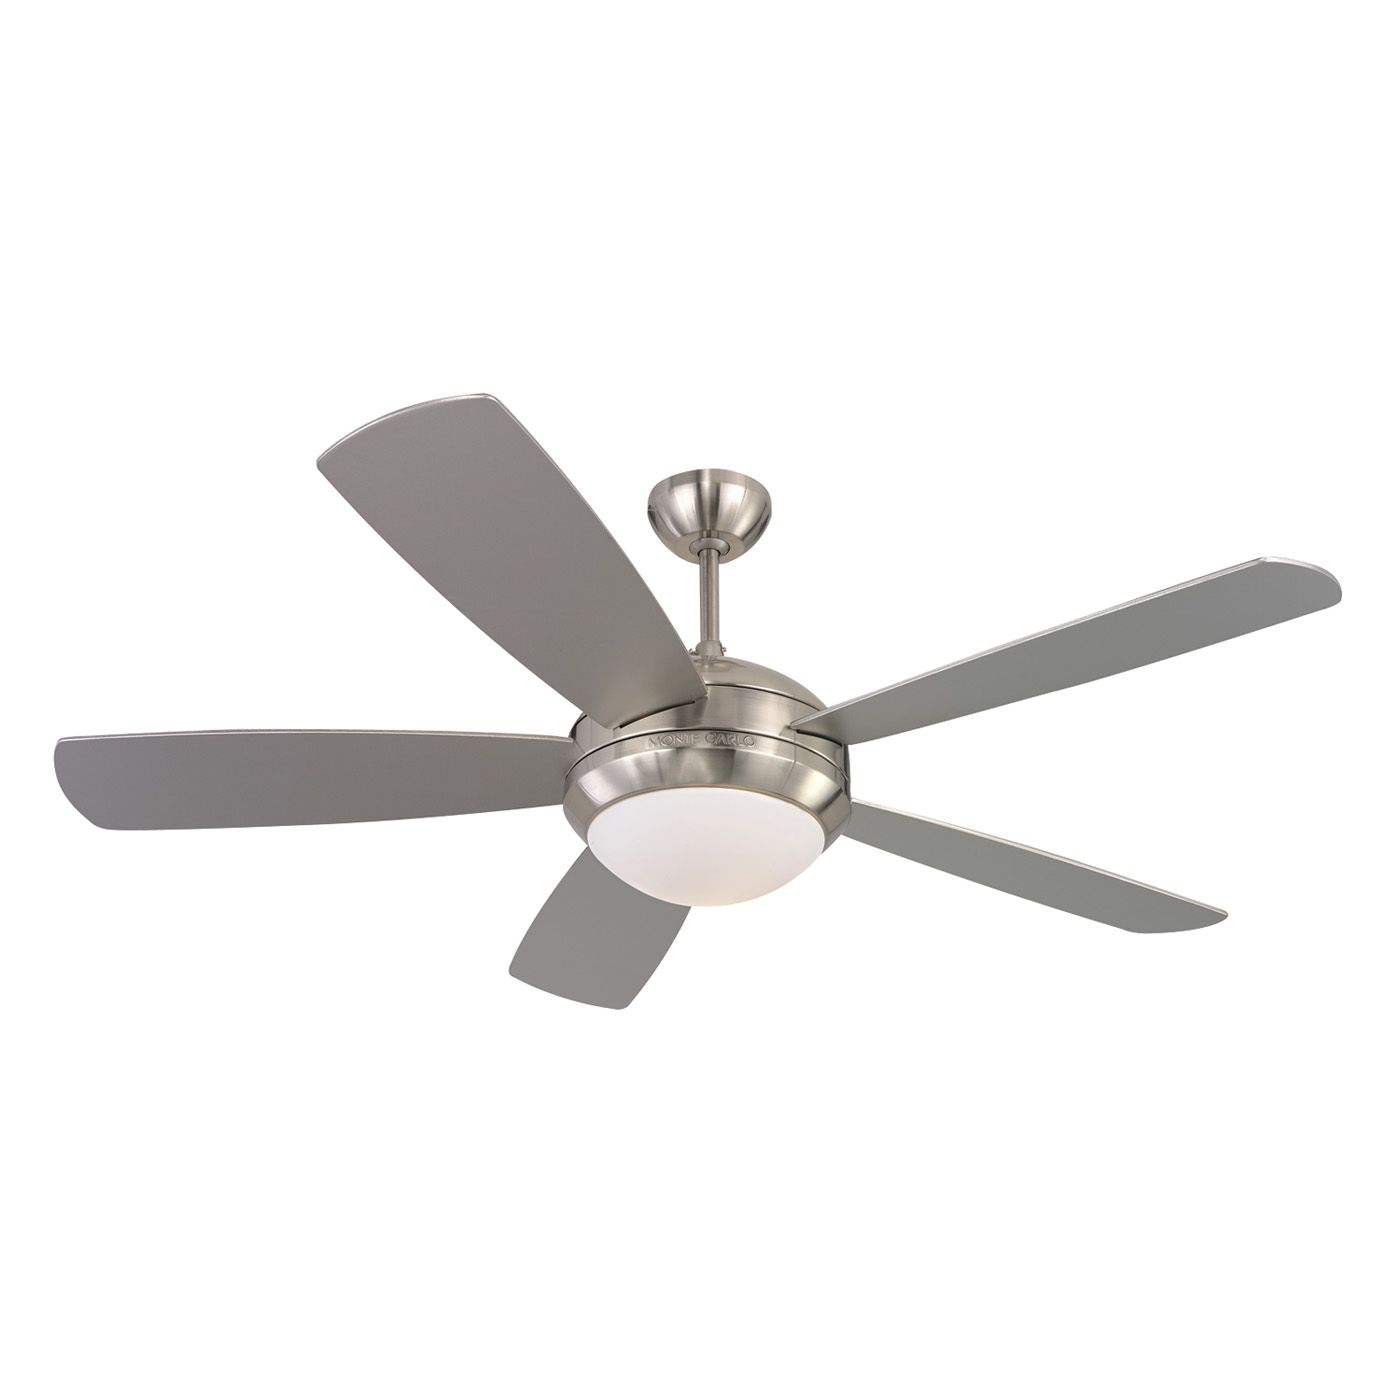 Shop Monte Carlo Fan pany 5DI52 52 in Discus Ceiling Fan at ATG